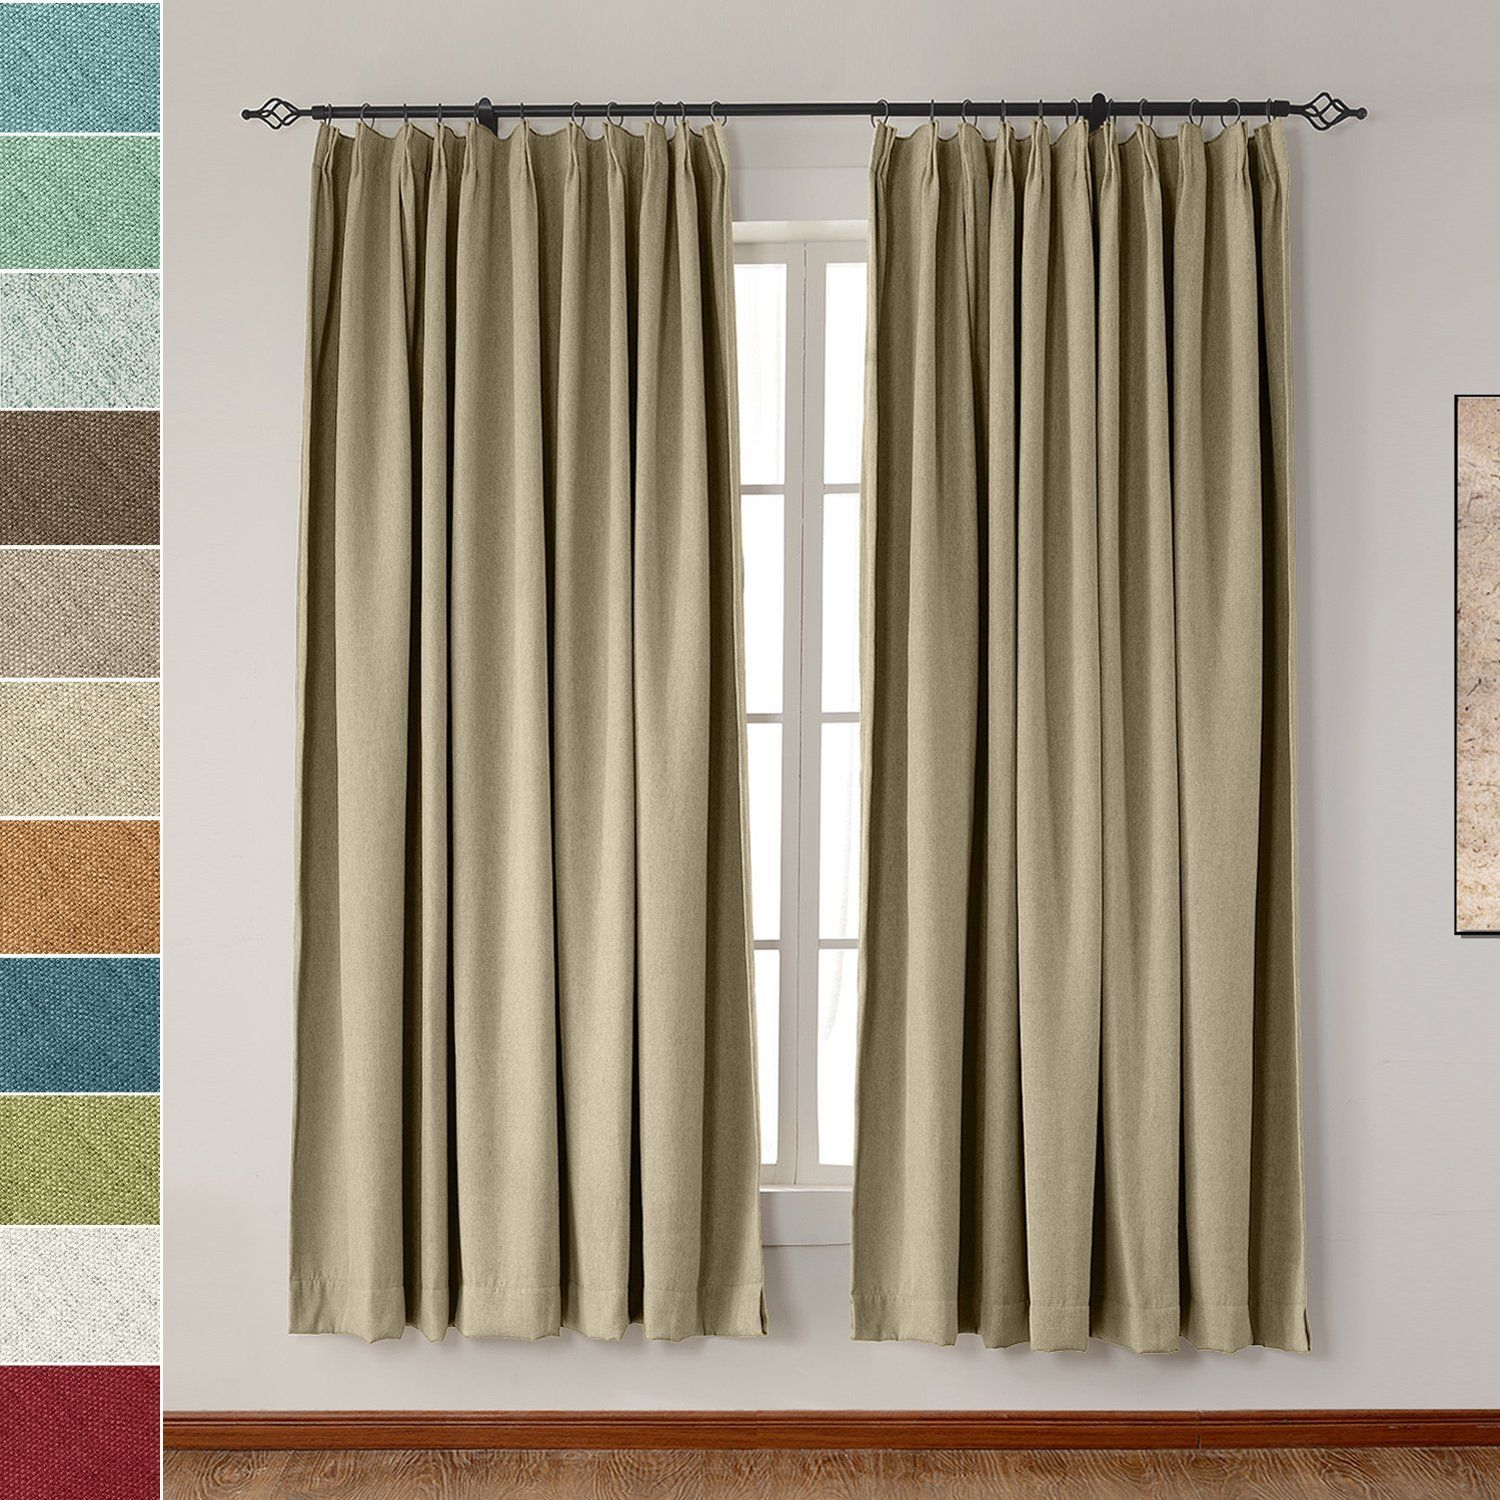 Amazon Com Extra Wide Heavyweight Luxury Faux Linen Curtain 120 W X 102 L Pinch Pleat Drapery Panel For Traverse Rod Linen Curtains Curtains Luxury Curtains